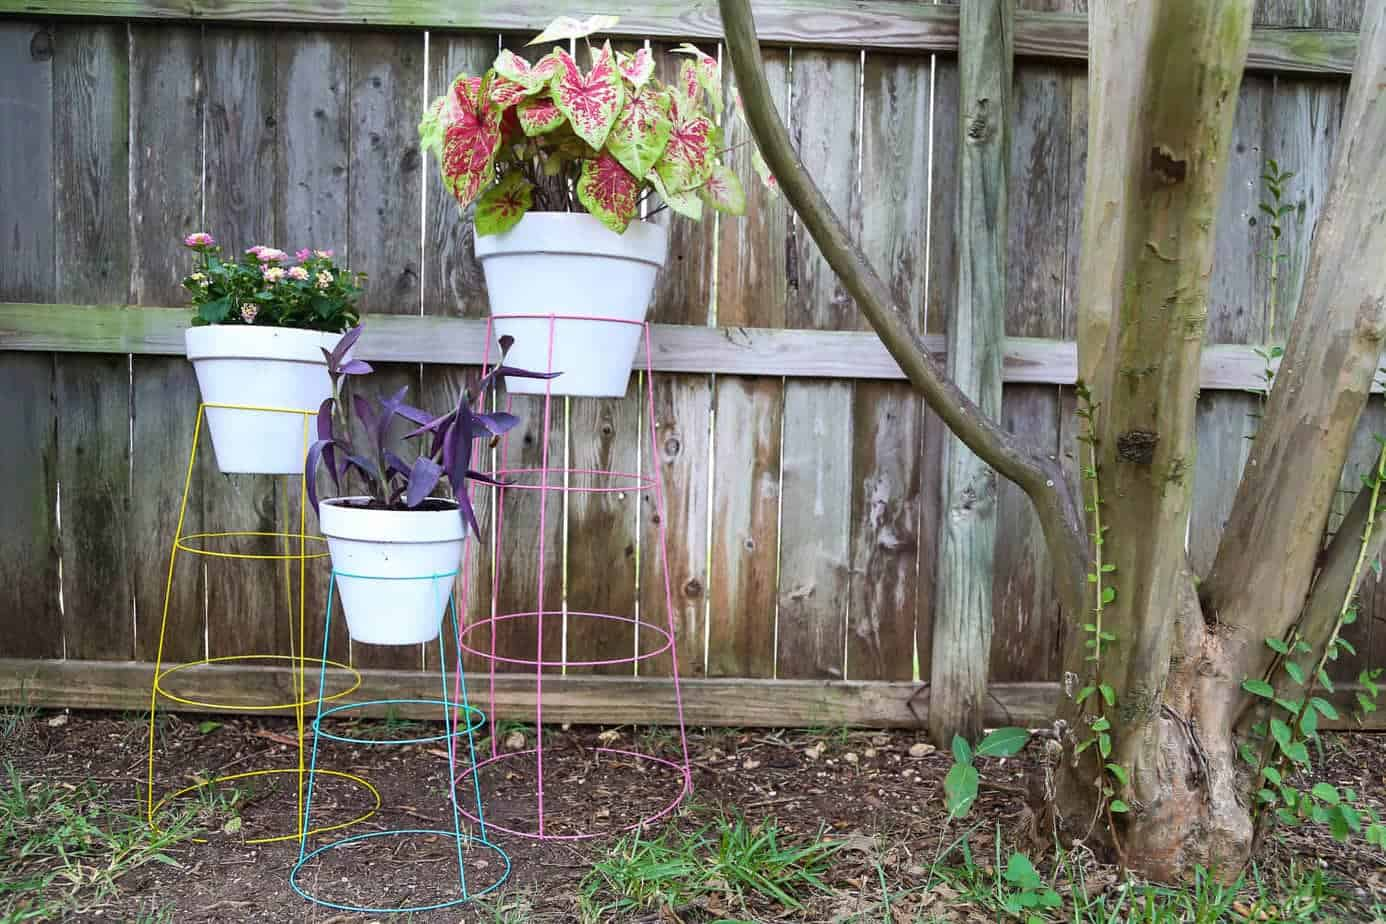 Glomorous Diy Plant Stand From Tomato Cages Diy Plant How To Turn A Tomato Cage Into A Wire Plant Stand Texas Tomato Cage Reviews Texas Tomato Cages Home Depot houzz 01 Texas Tomato Cages